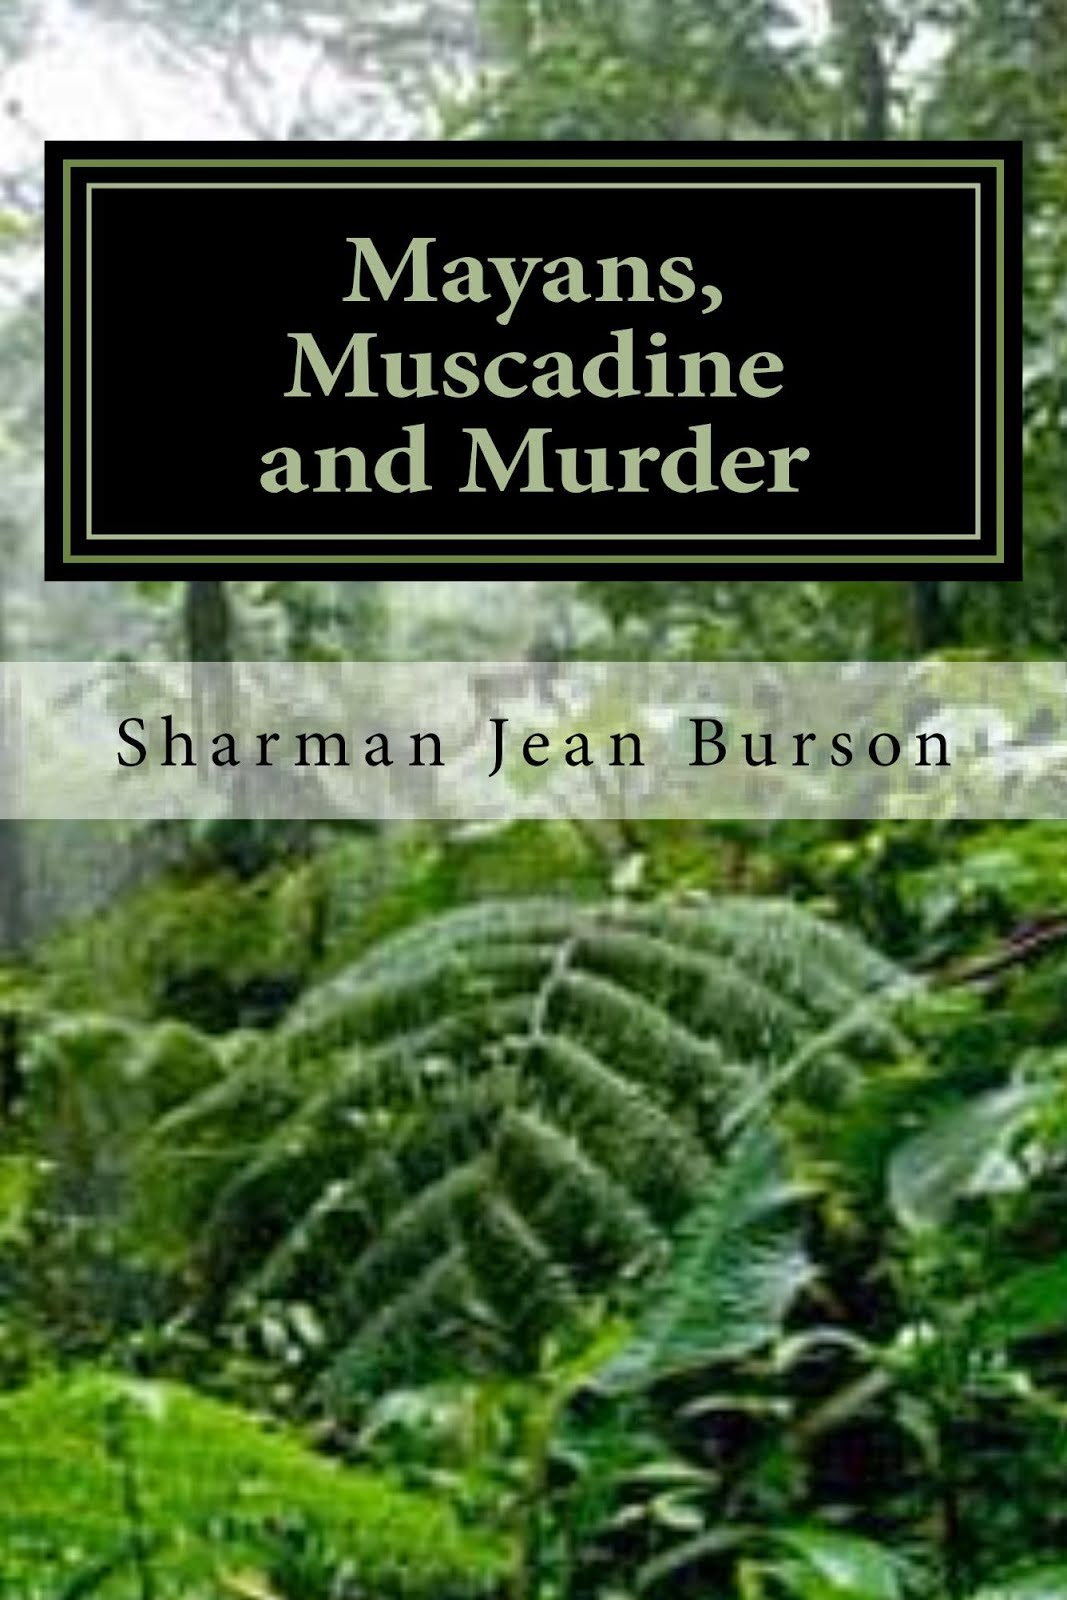 Mayans, Muscadine and Murder